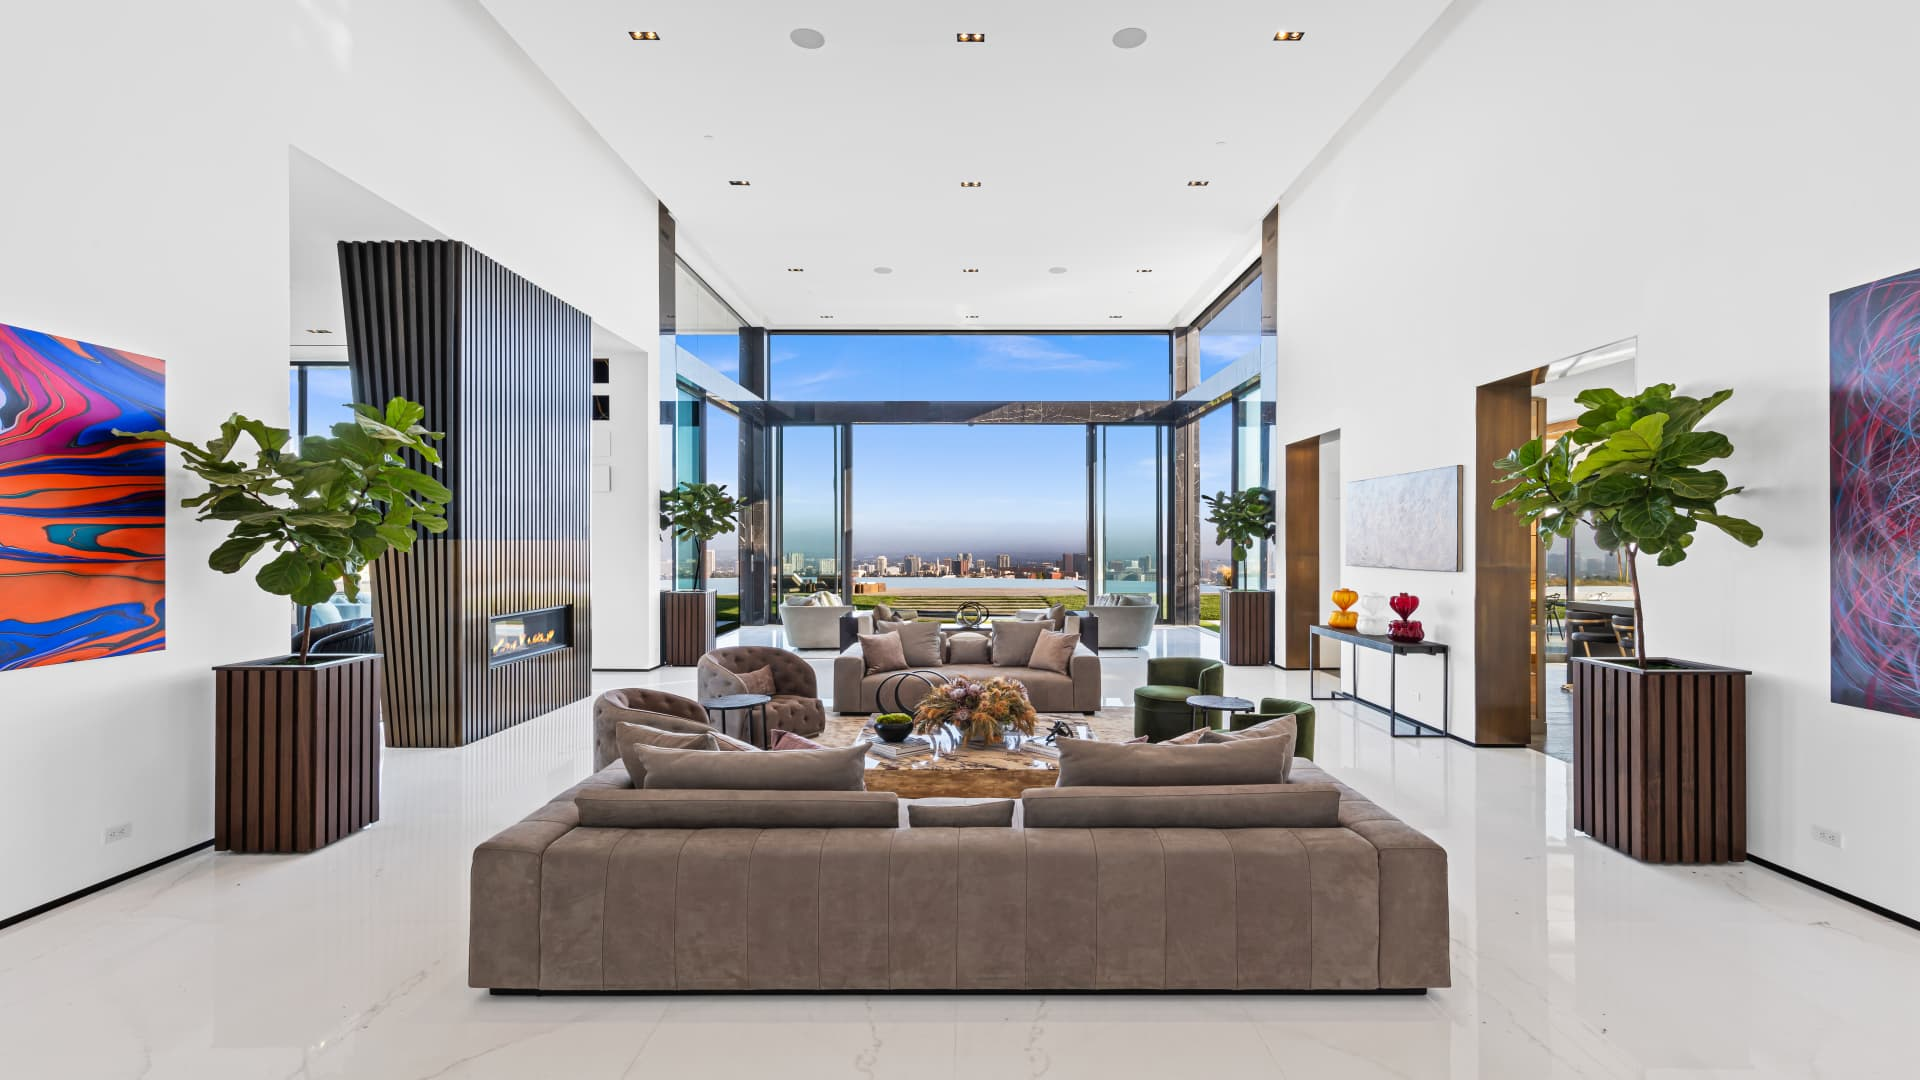 The living room has 21-foot ceilings and a floor-to-ceiling glass wall that opens to the backyard.